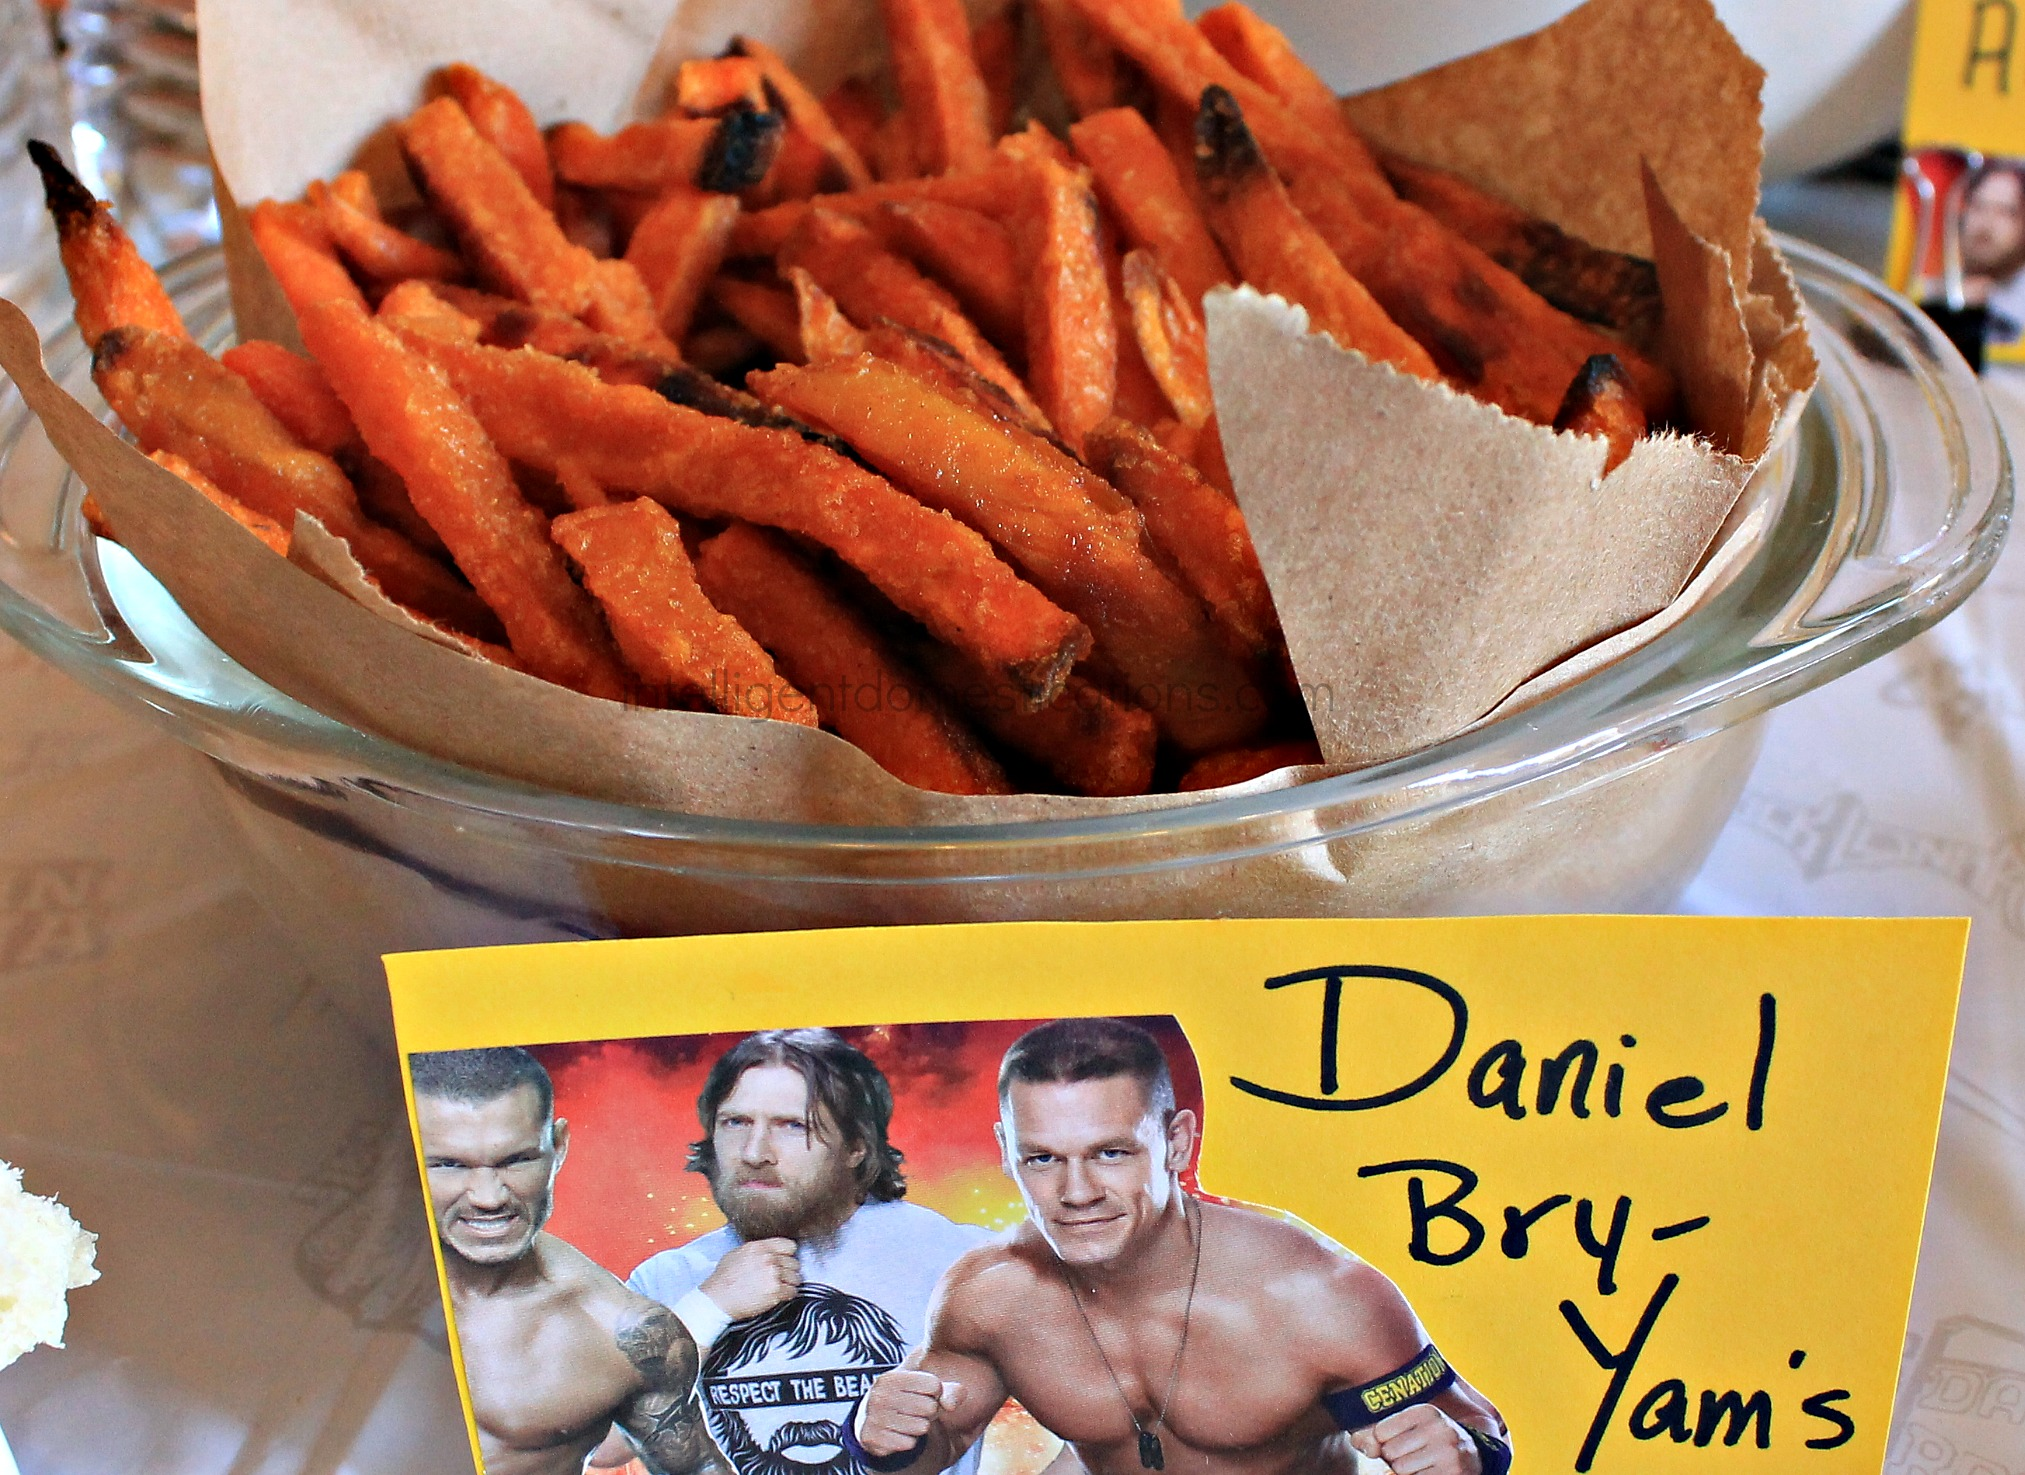 Serve your guests some Daniel Bry-Yams at your WWE Theme party.WWE Theme Party Ideas with recipes and decor. WWE Party.